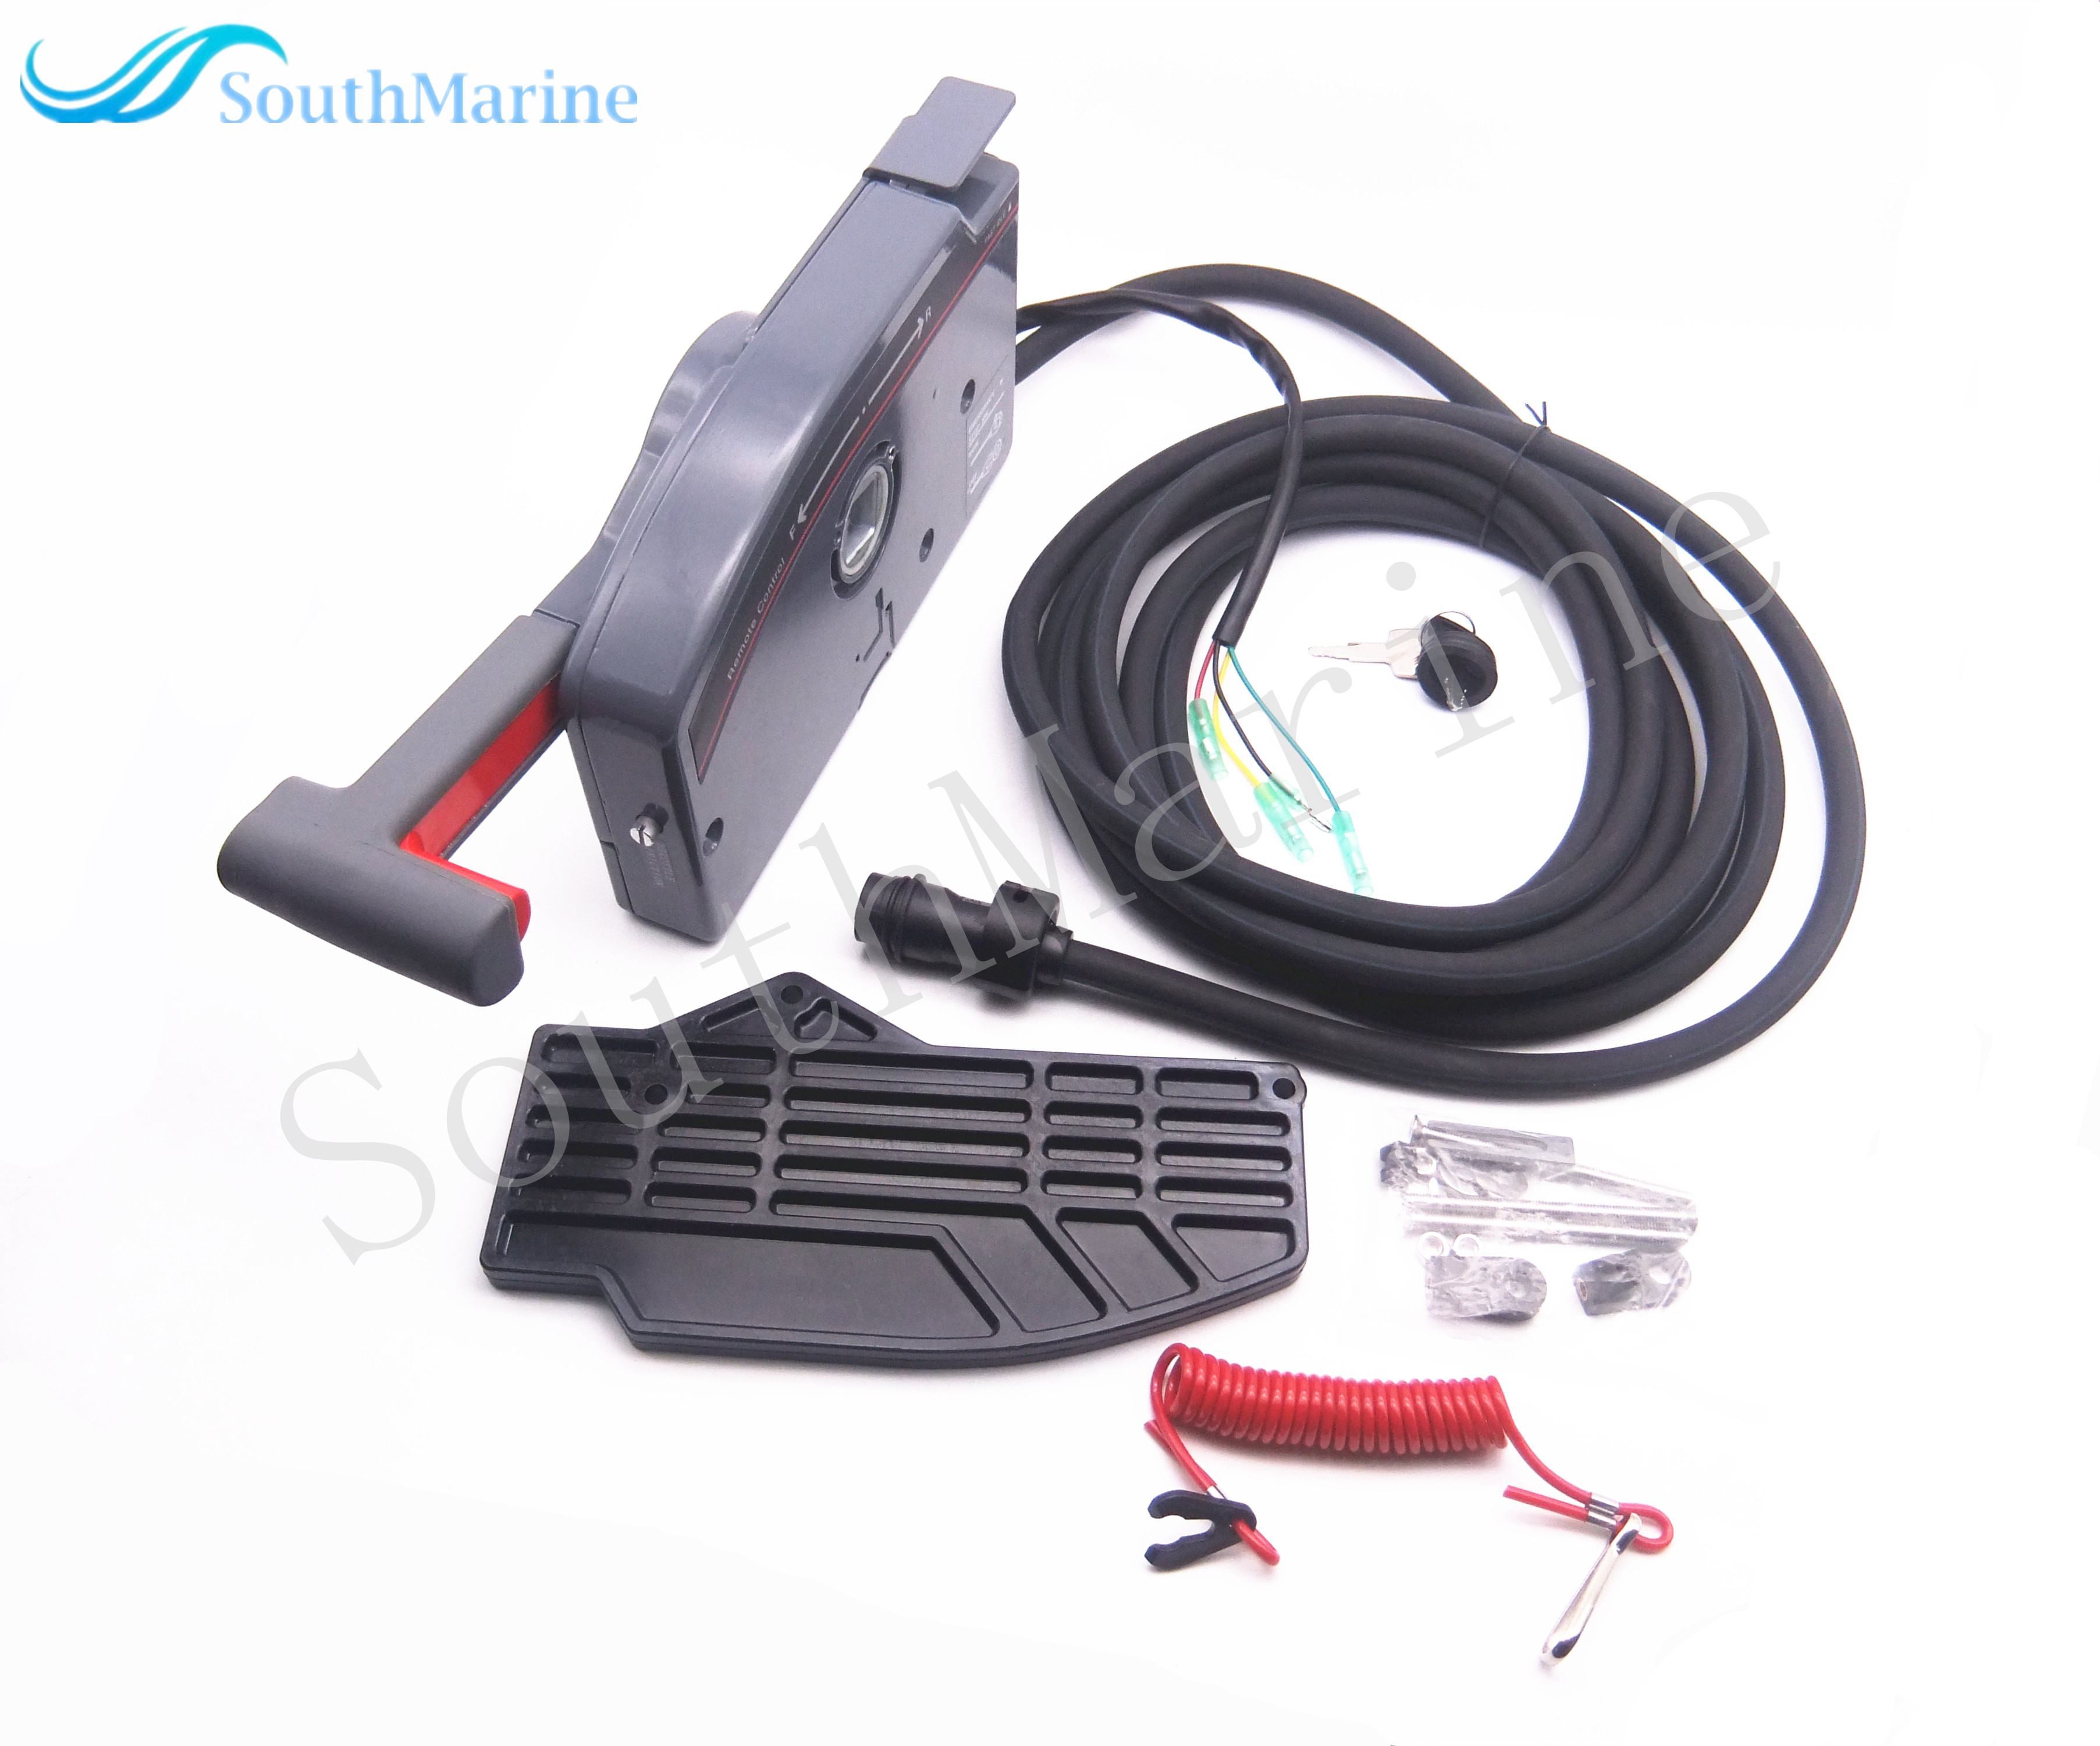 Outboard remote control box for yamaha 703 boat motor 703 for Trolling motor remote control